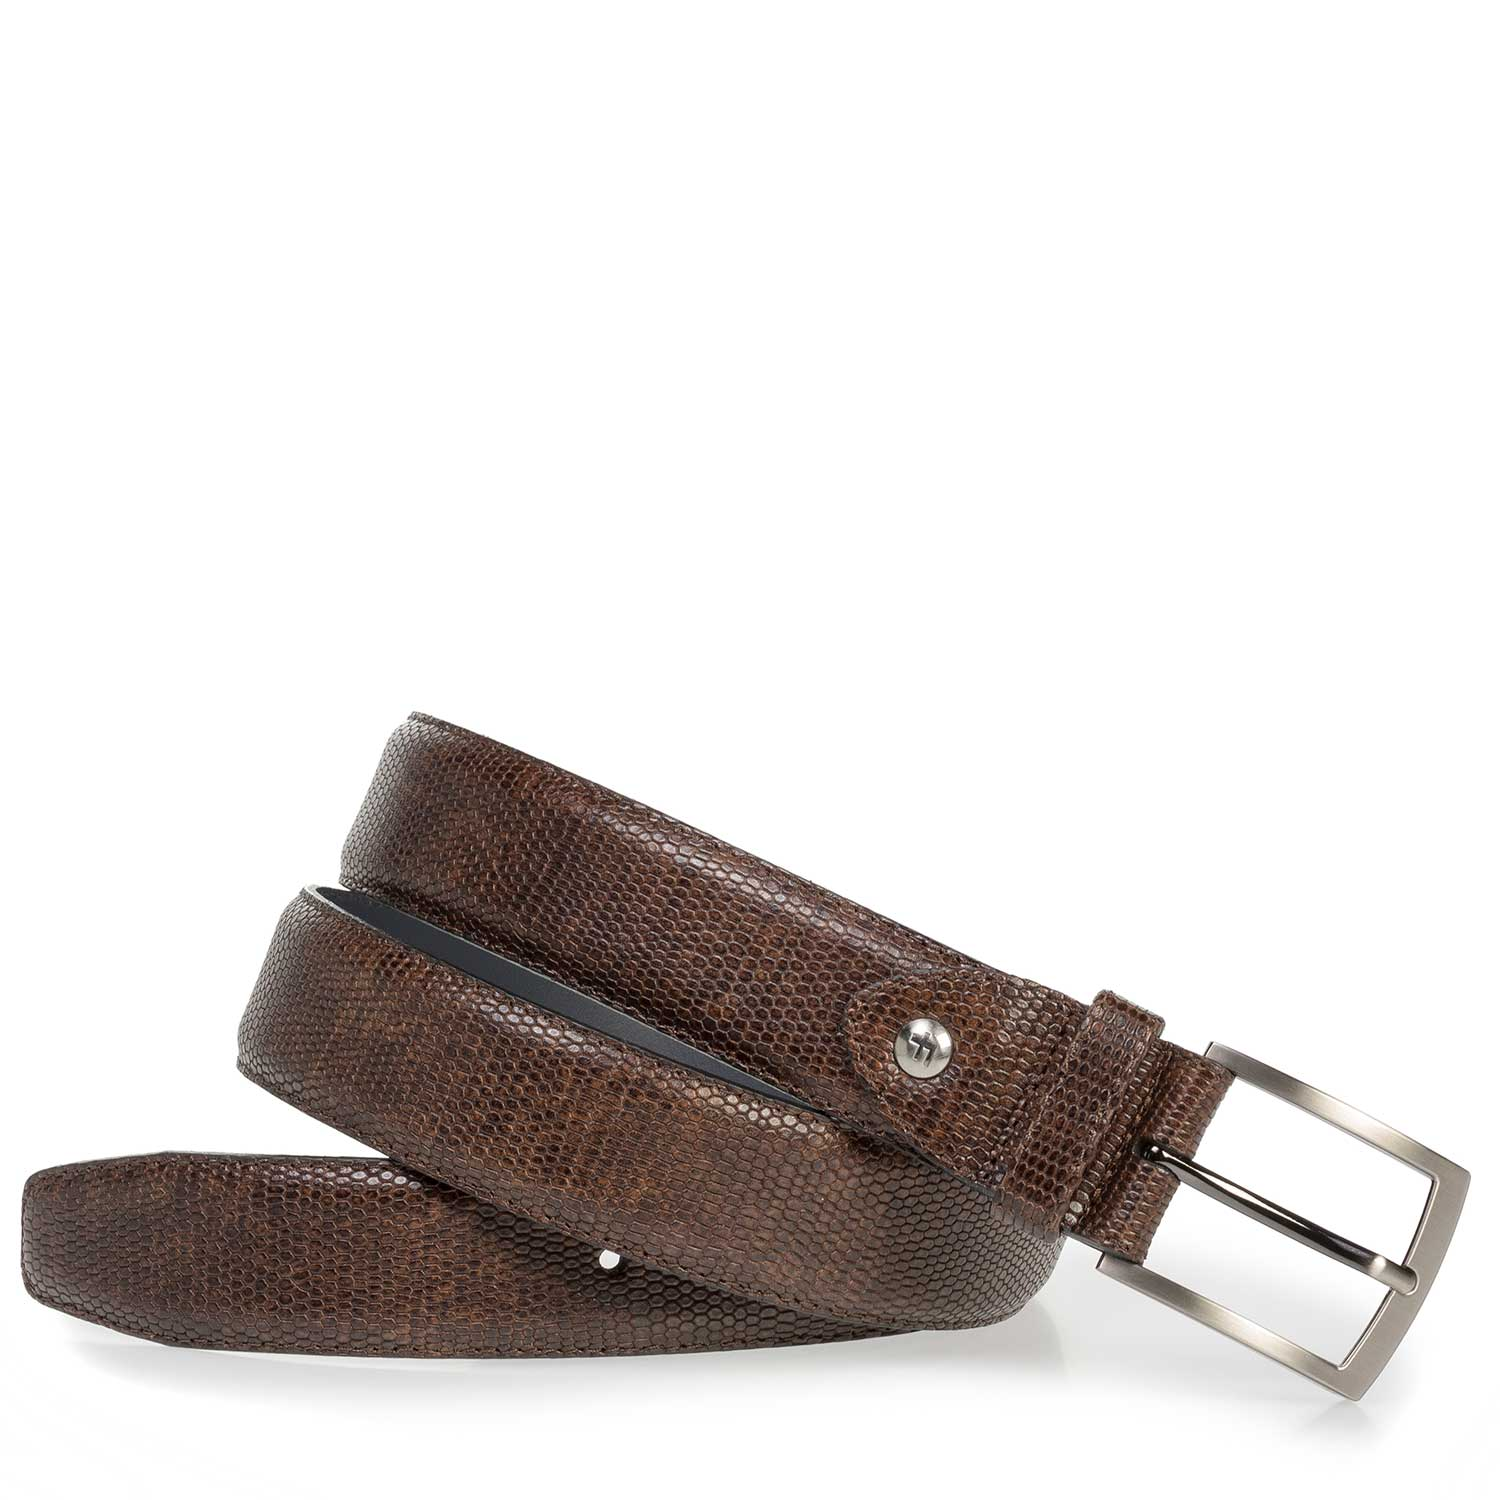 75201/51 - Dark brown leather belt with lizard print